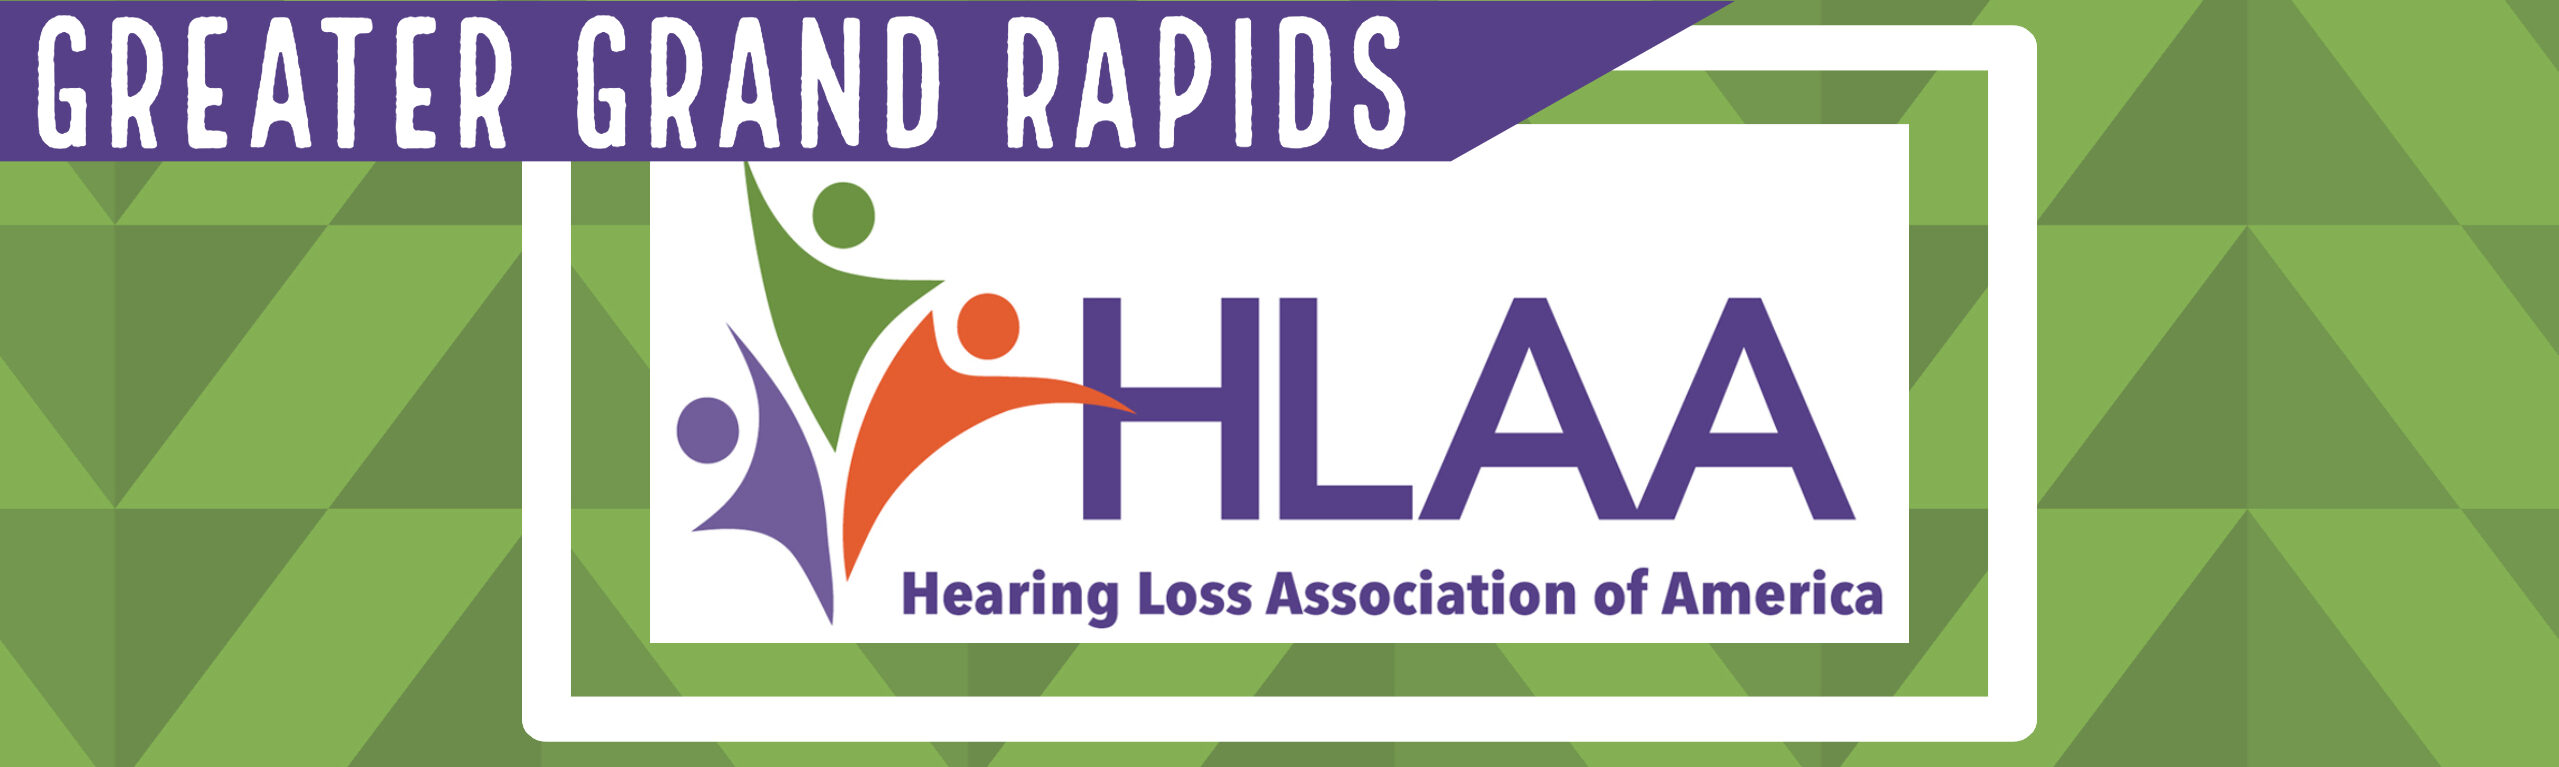 Hearing Loss Association of America, Greater Grand Rapids